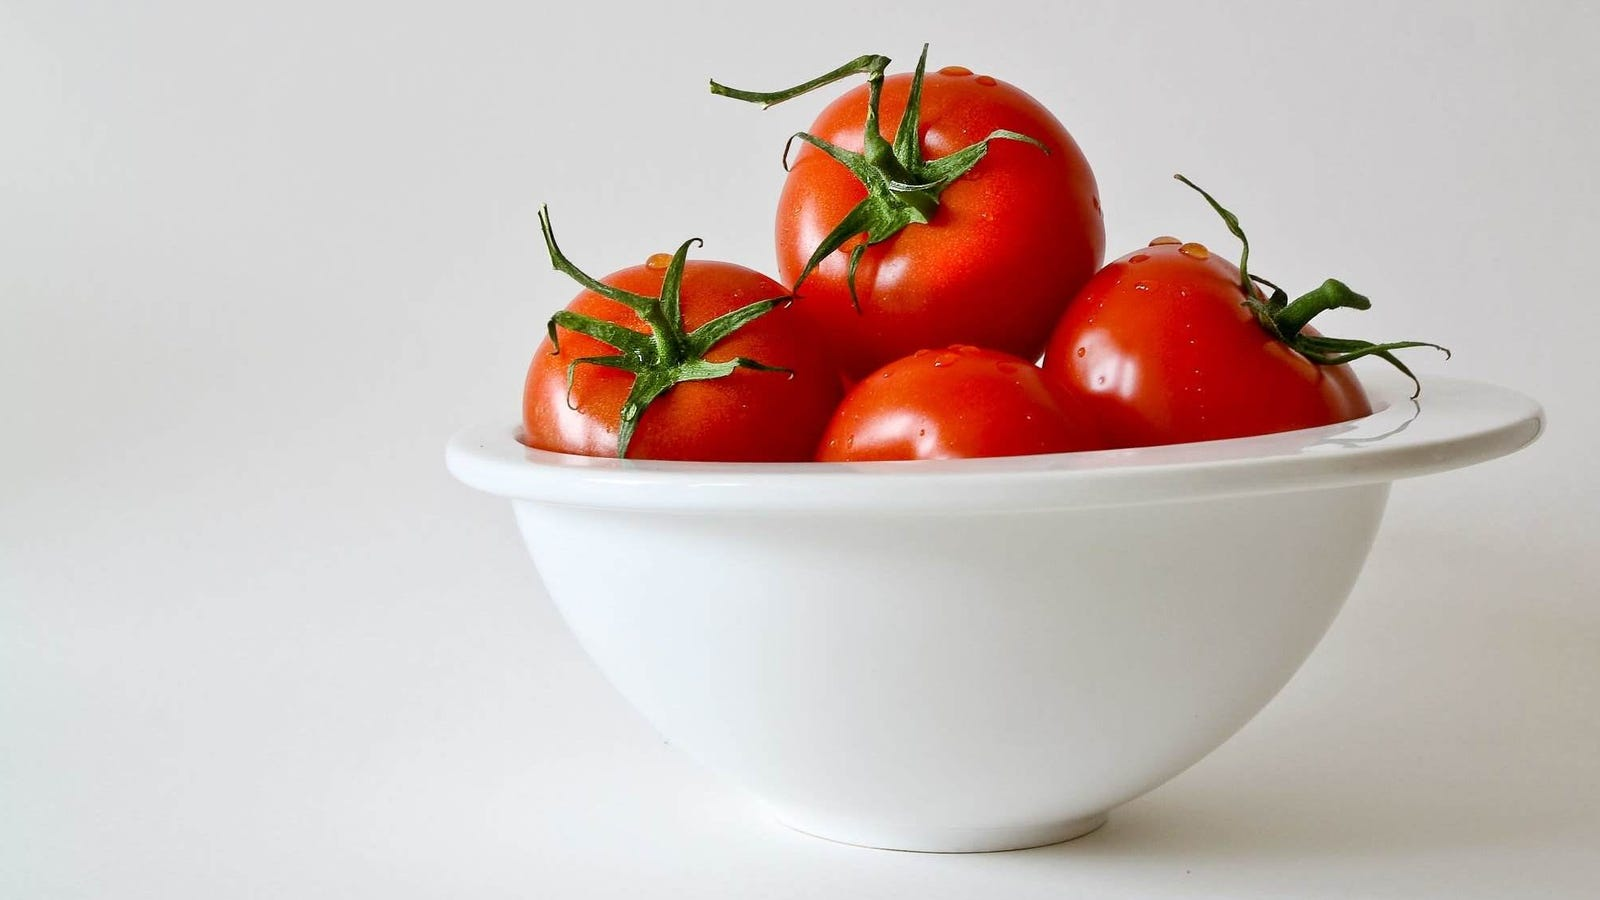 These Are the Best Ways to Eat Summer Tomatoes